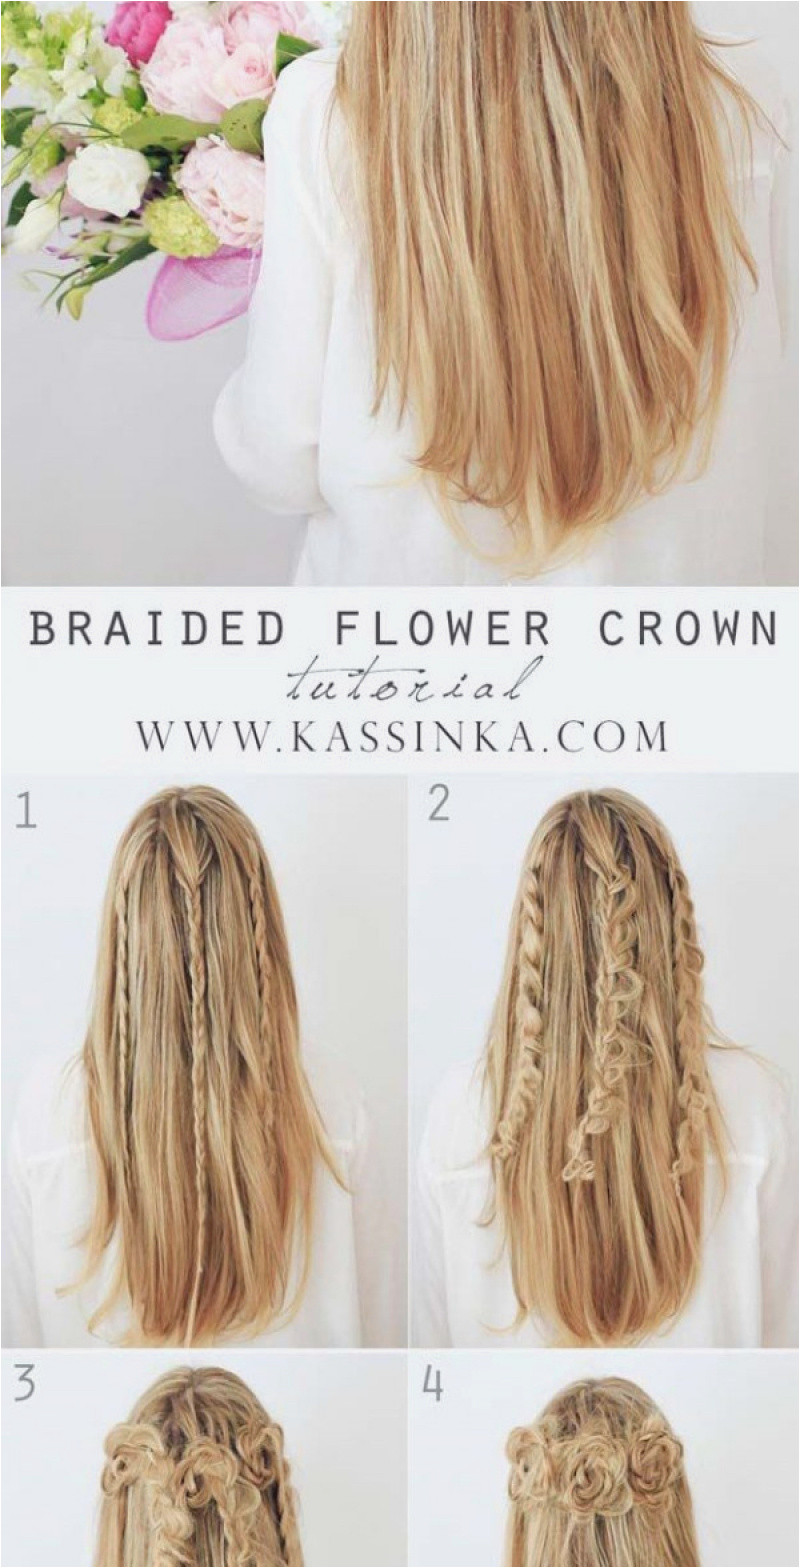 Easy Hairstyles Mid Length Hair Cute Easy Fast Hairstyles Best Hairstyle for Medium Hair 0d as